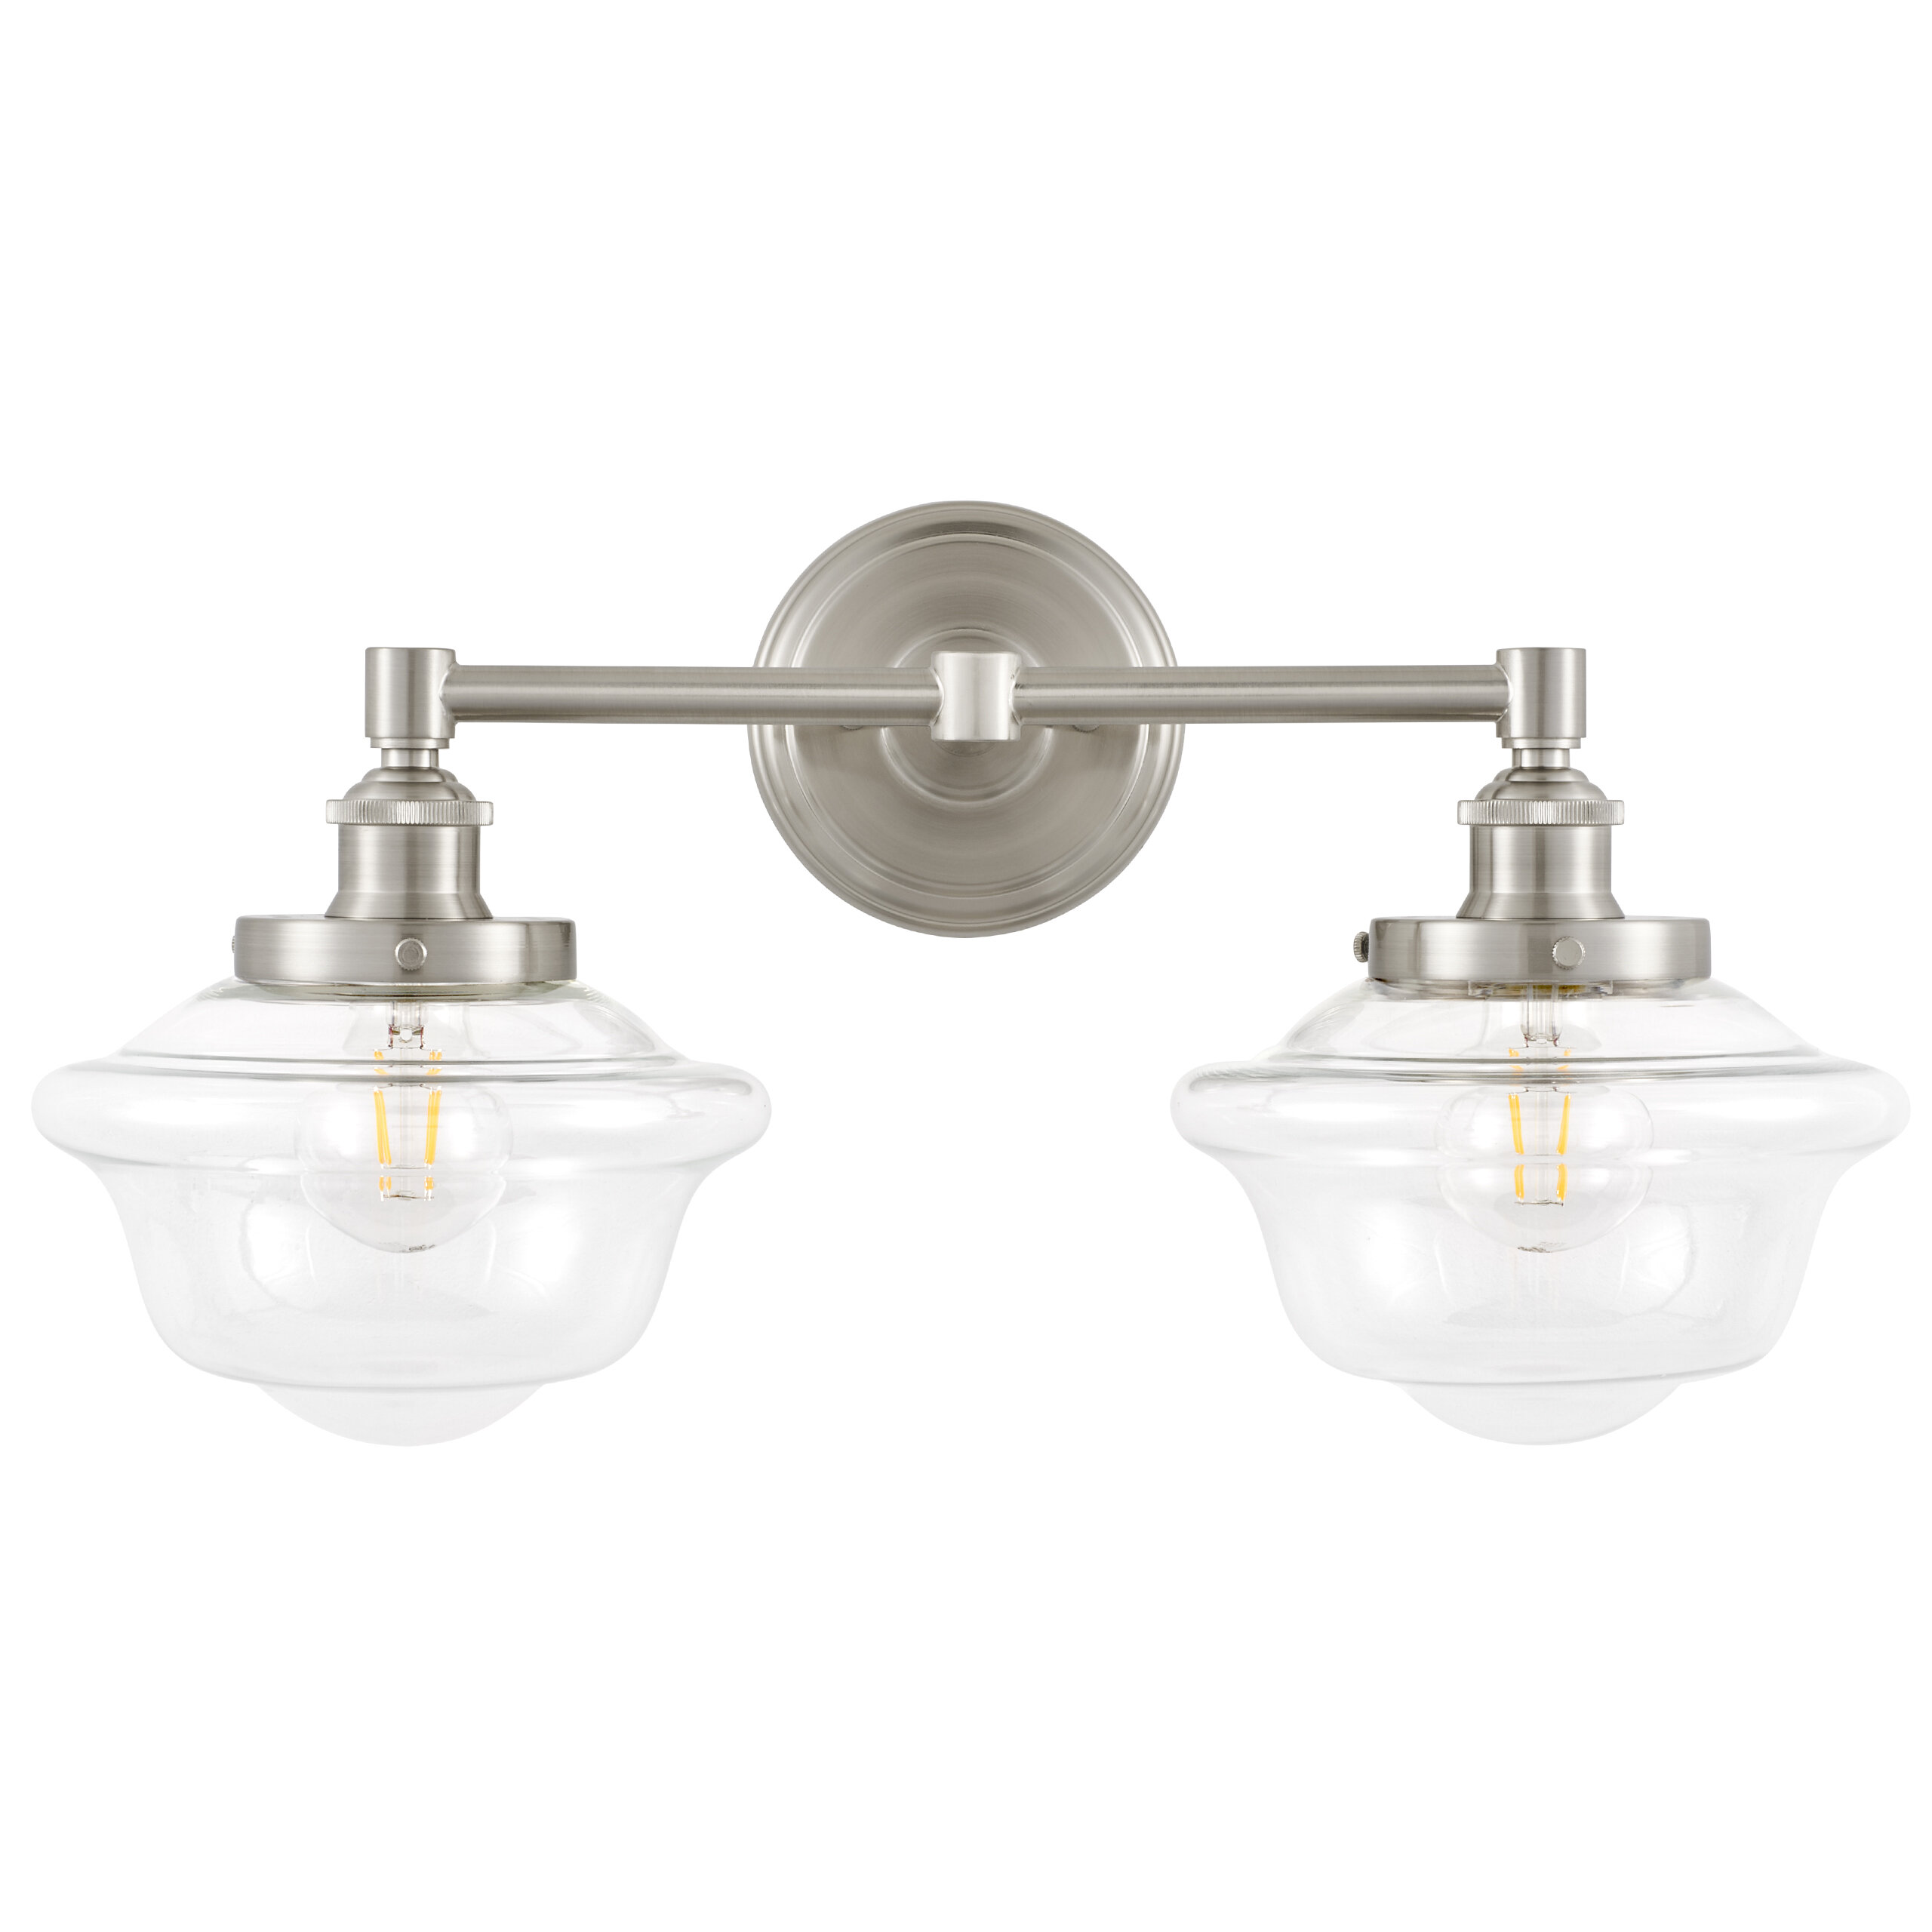 Brushed Nickel Cottage Country Bathroom Vanity Lighting You Ll Love In 2021 Wayfair